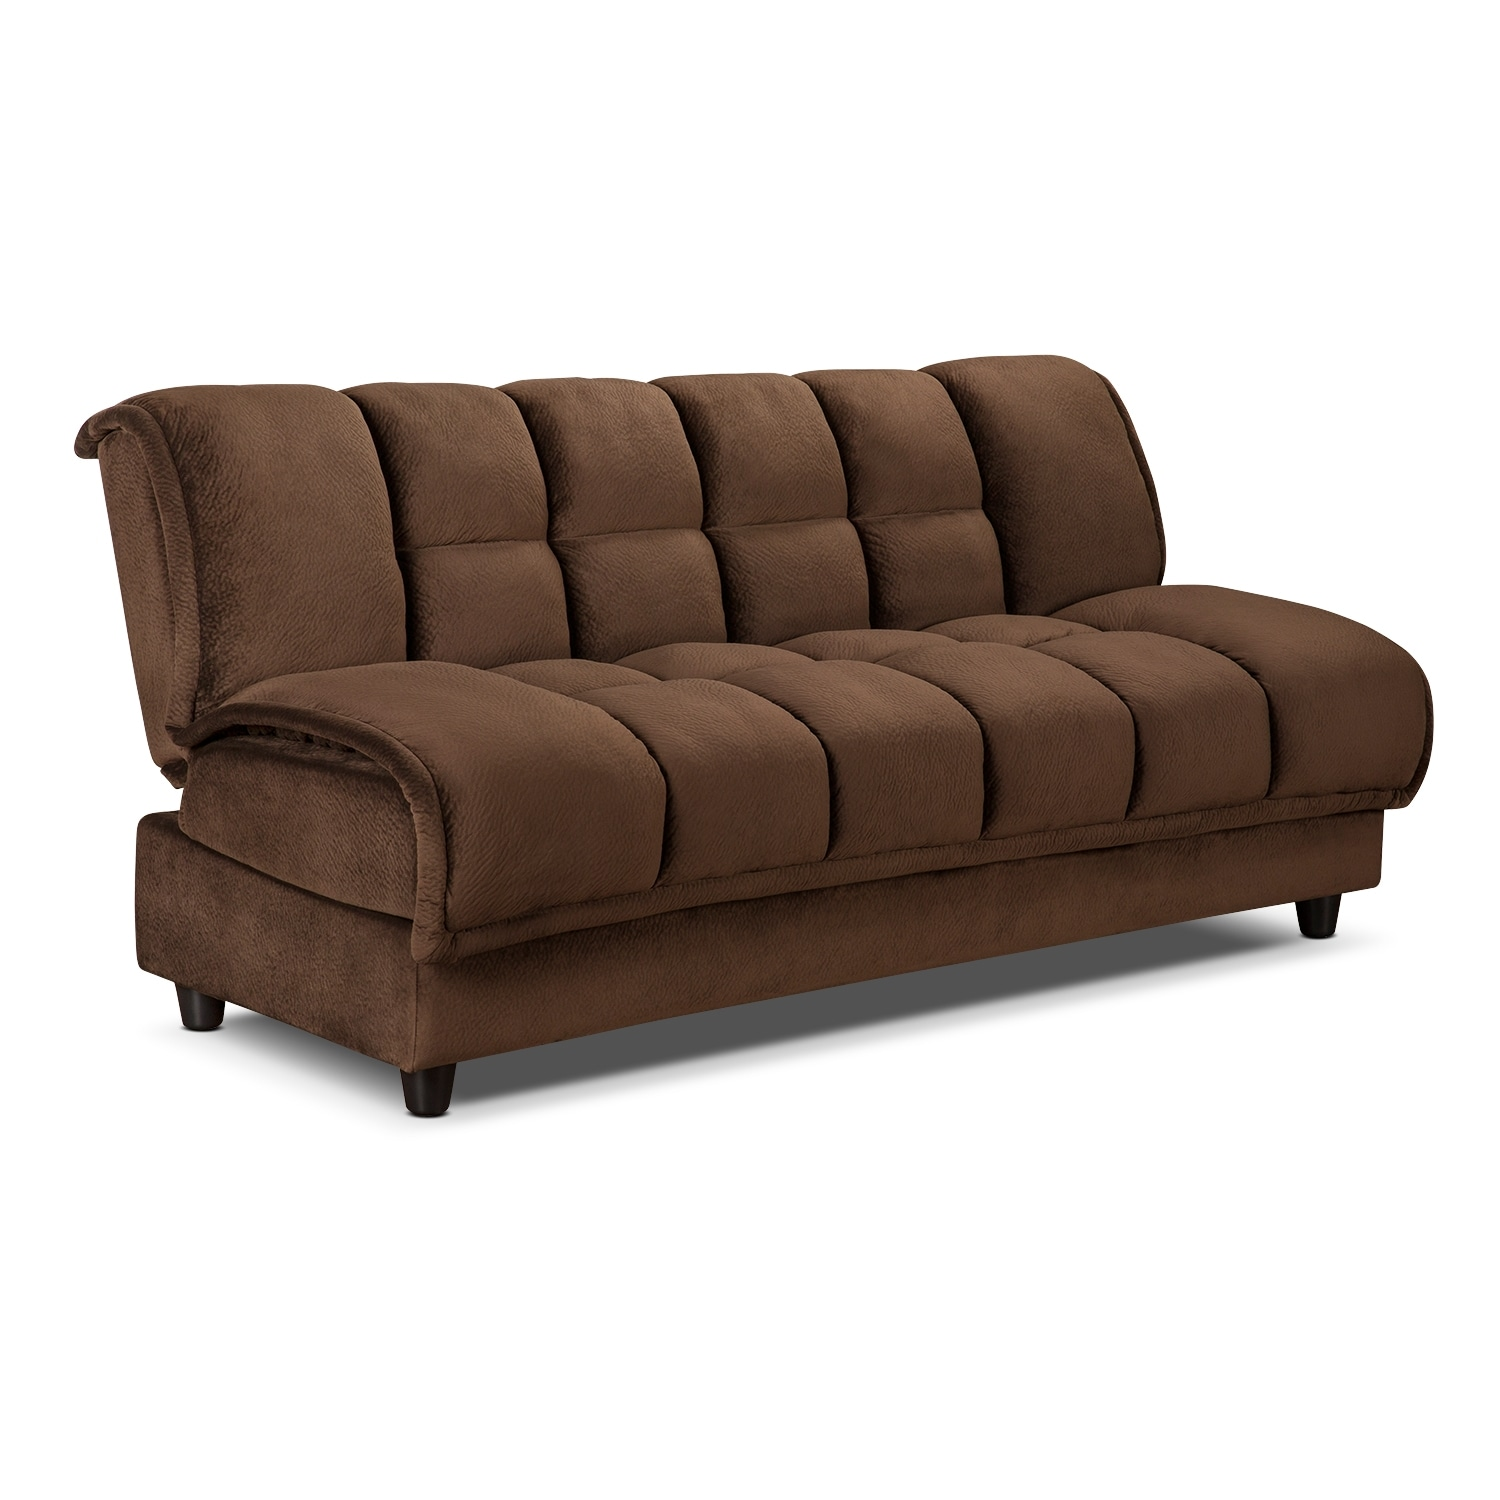 Darrow Futon Sofa Bed With Storage